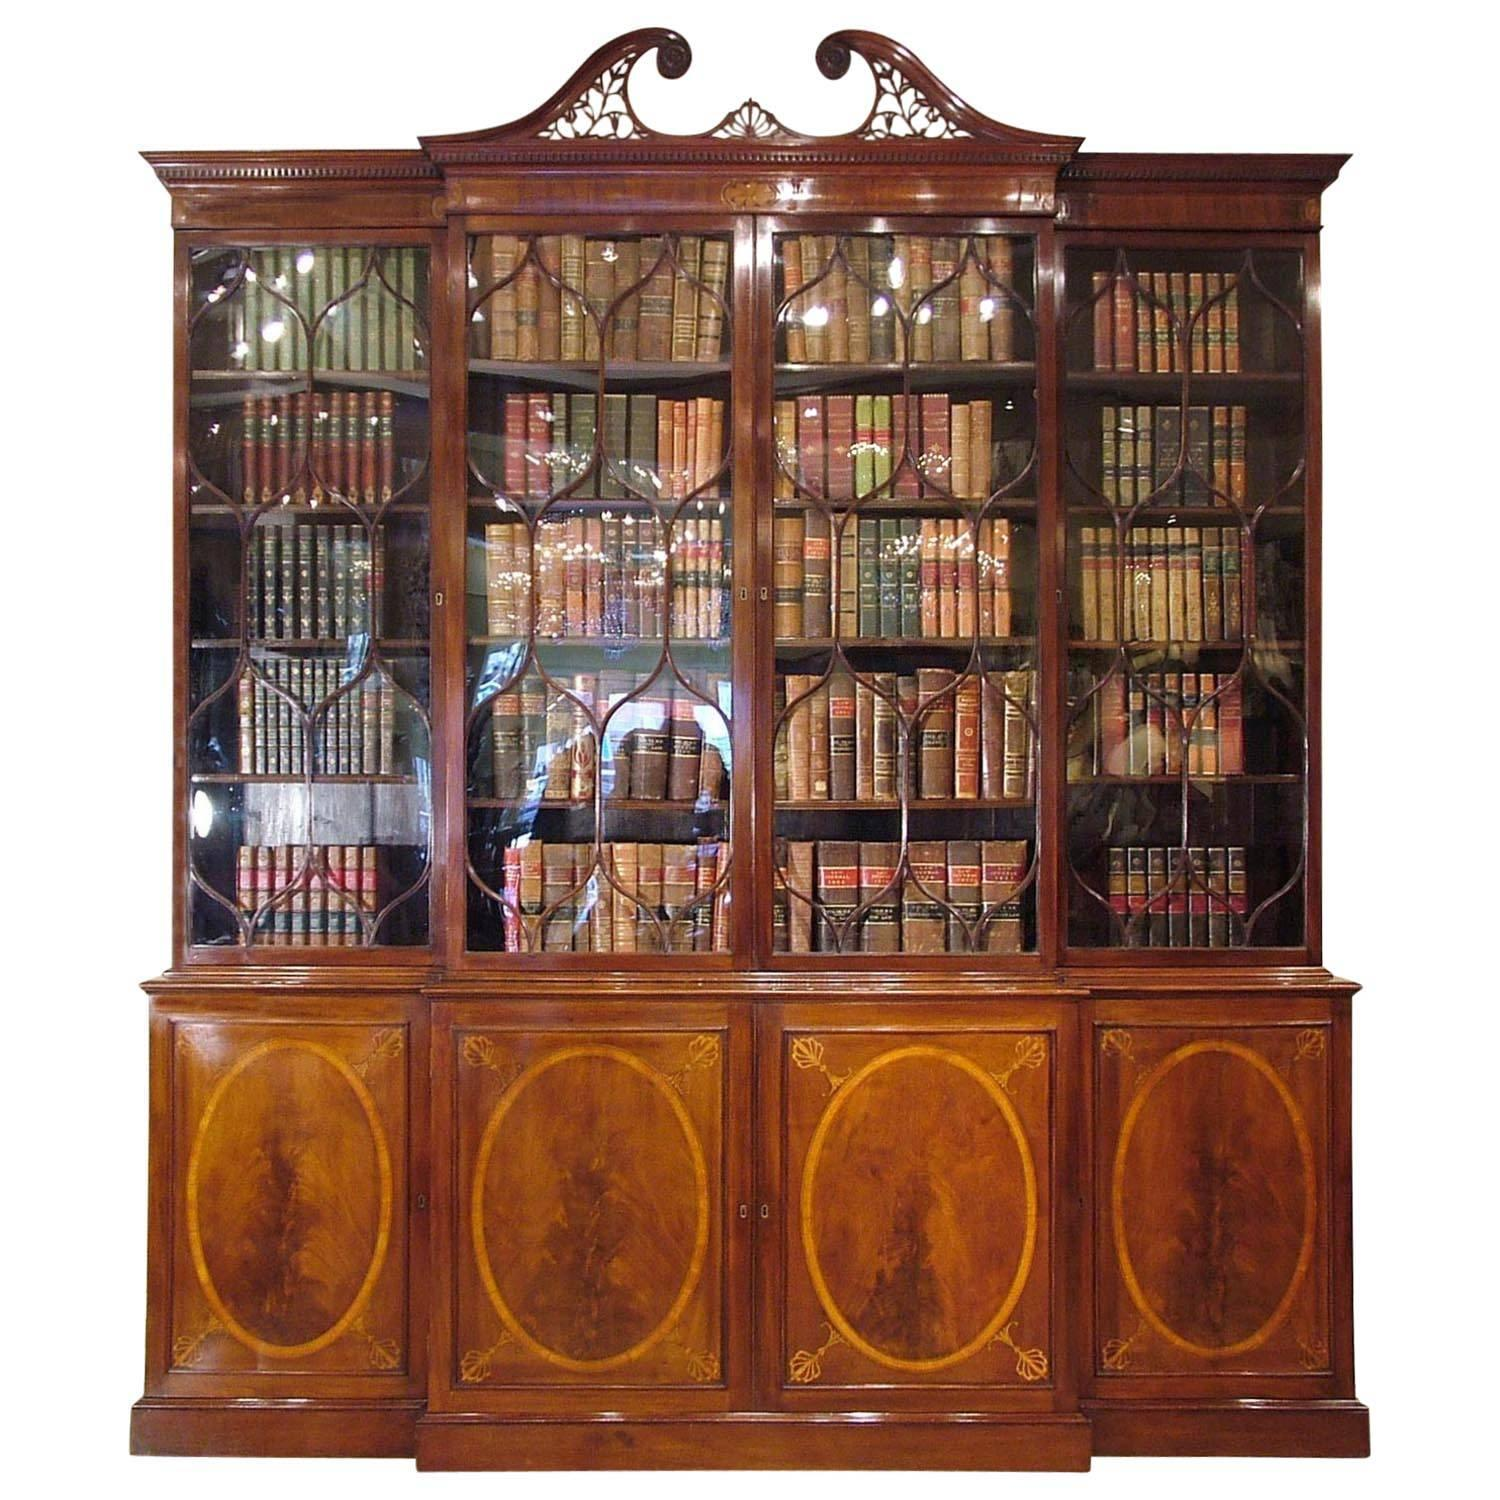 18th Century English Breakfront Mahogany Library Bookcase